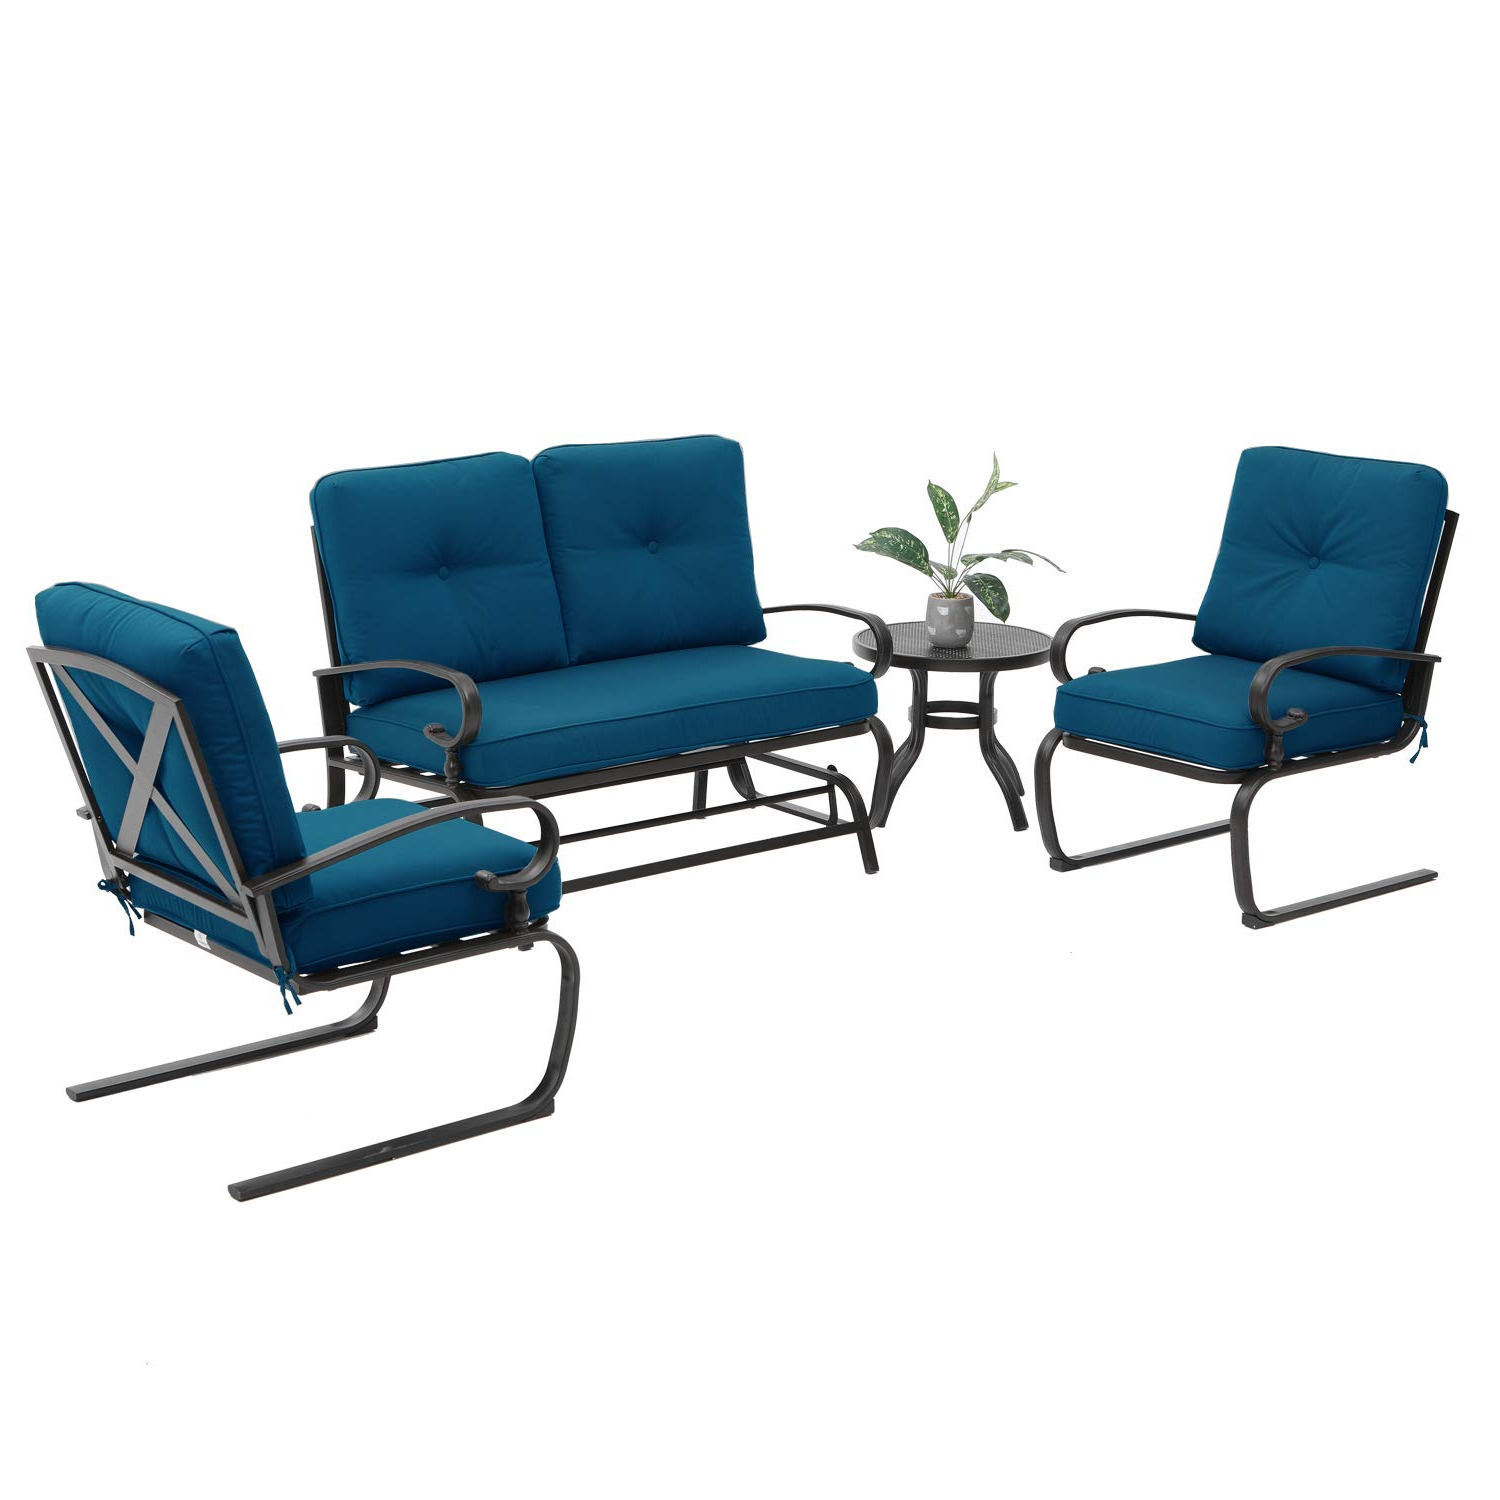 Famous Outdoor Patio Swing Glider Bench Chair S With Loveseat, Bistro Table, 2 Spring Chair  Swing Glider Rocking (Gallery 28 of 30)